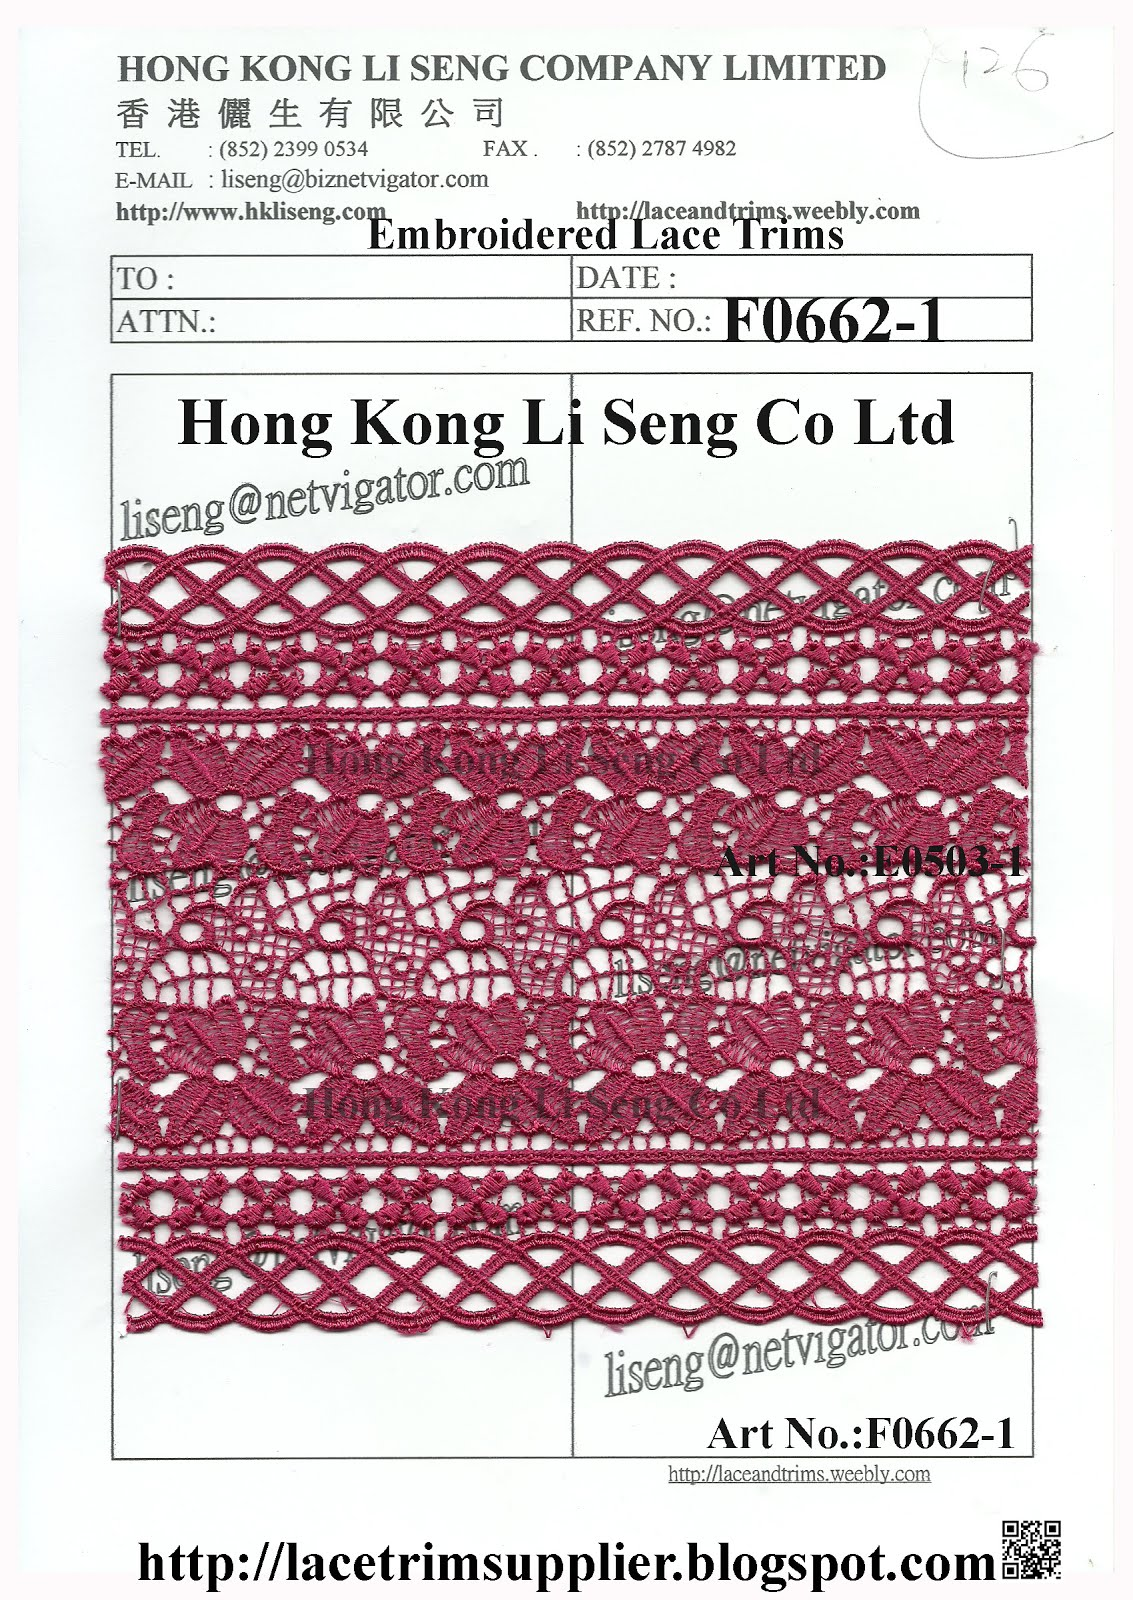 A Good Stock Lot Lace Trims Supplier - Hong Kong Li Seng Co Ltd